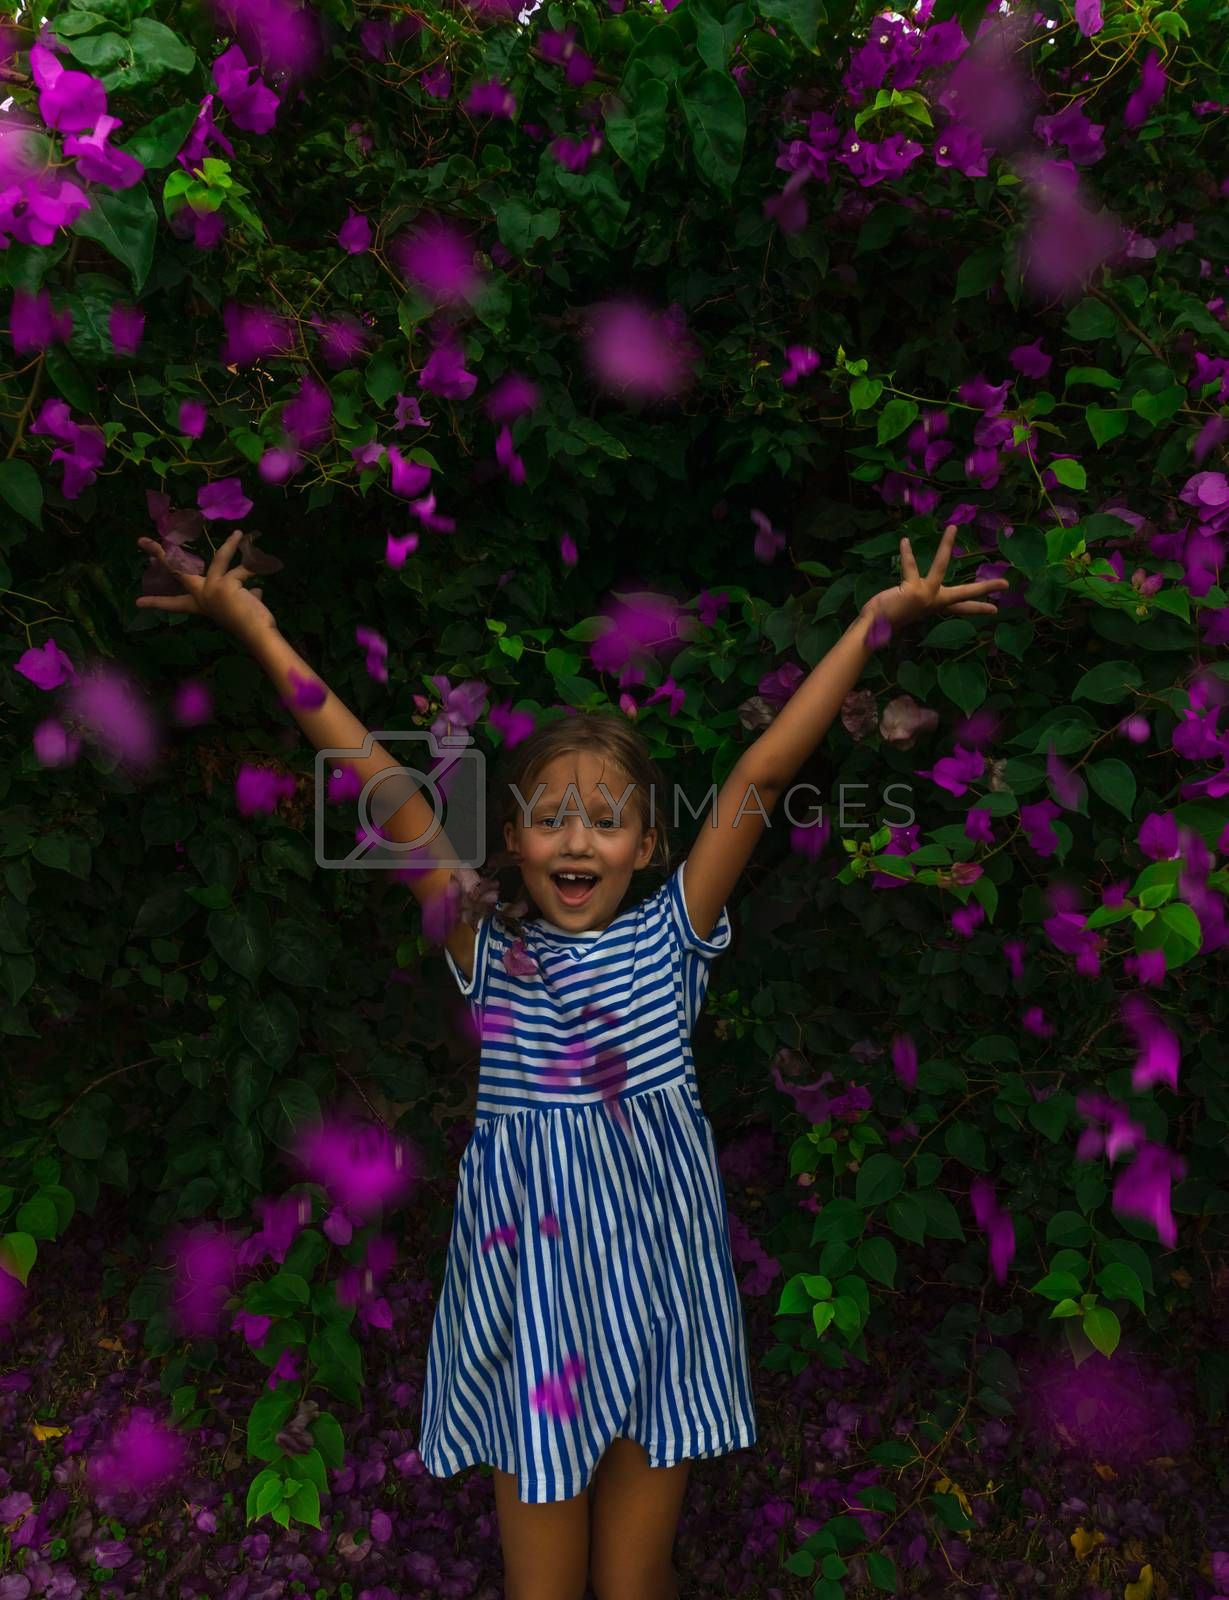 Cute Cheerful Little Girl with Raised Up Hands Enjoying Great Fresh Floral Bush. Summer Garden with Many Purple Flowers. Happy Healthy Childhood.